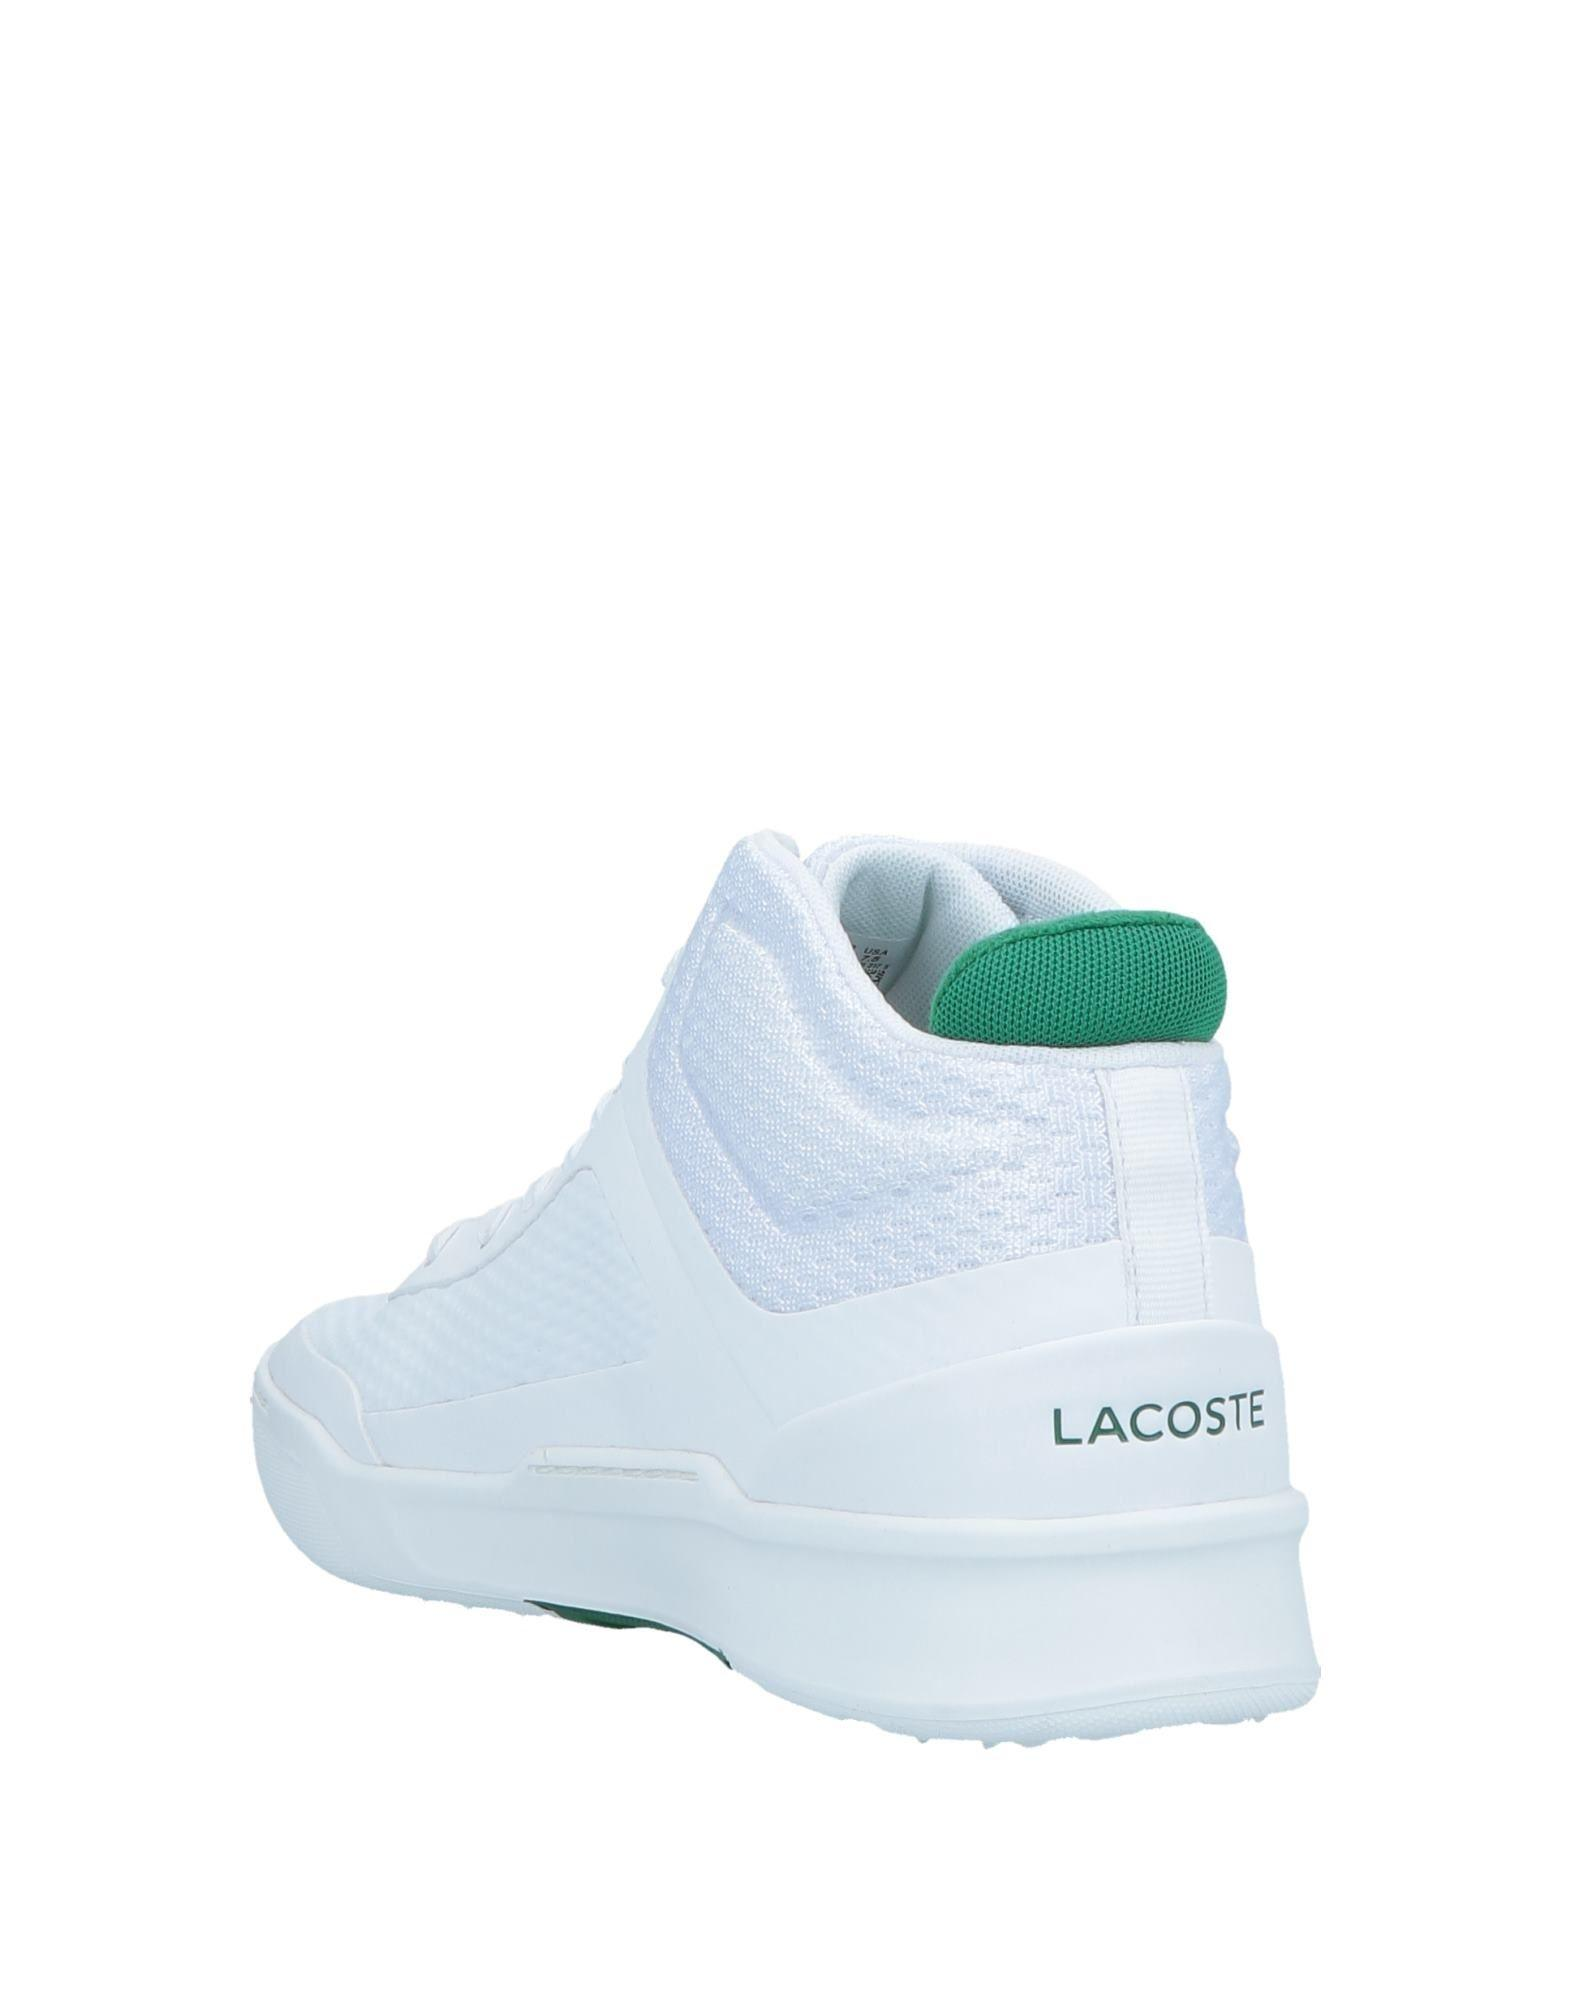 lacoste high cut shoes - 65% OFF